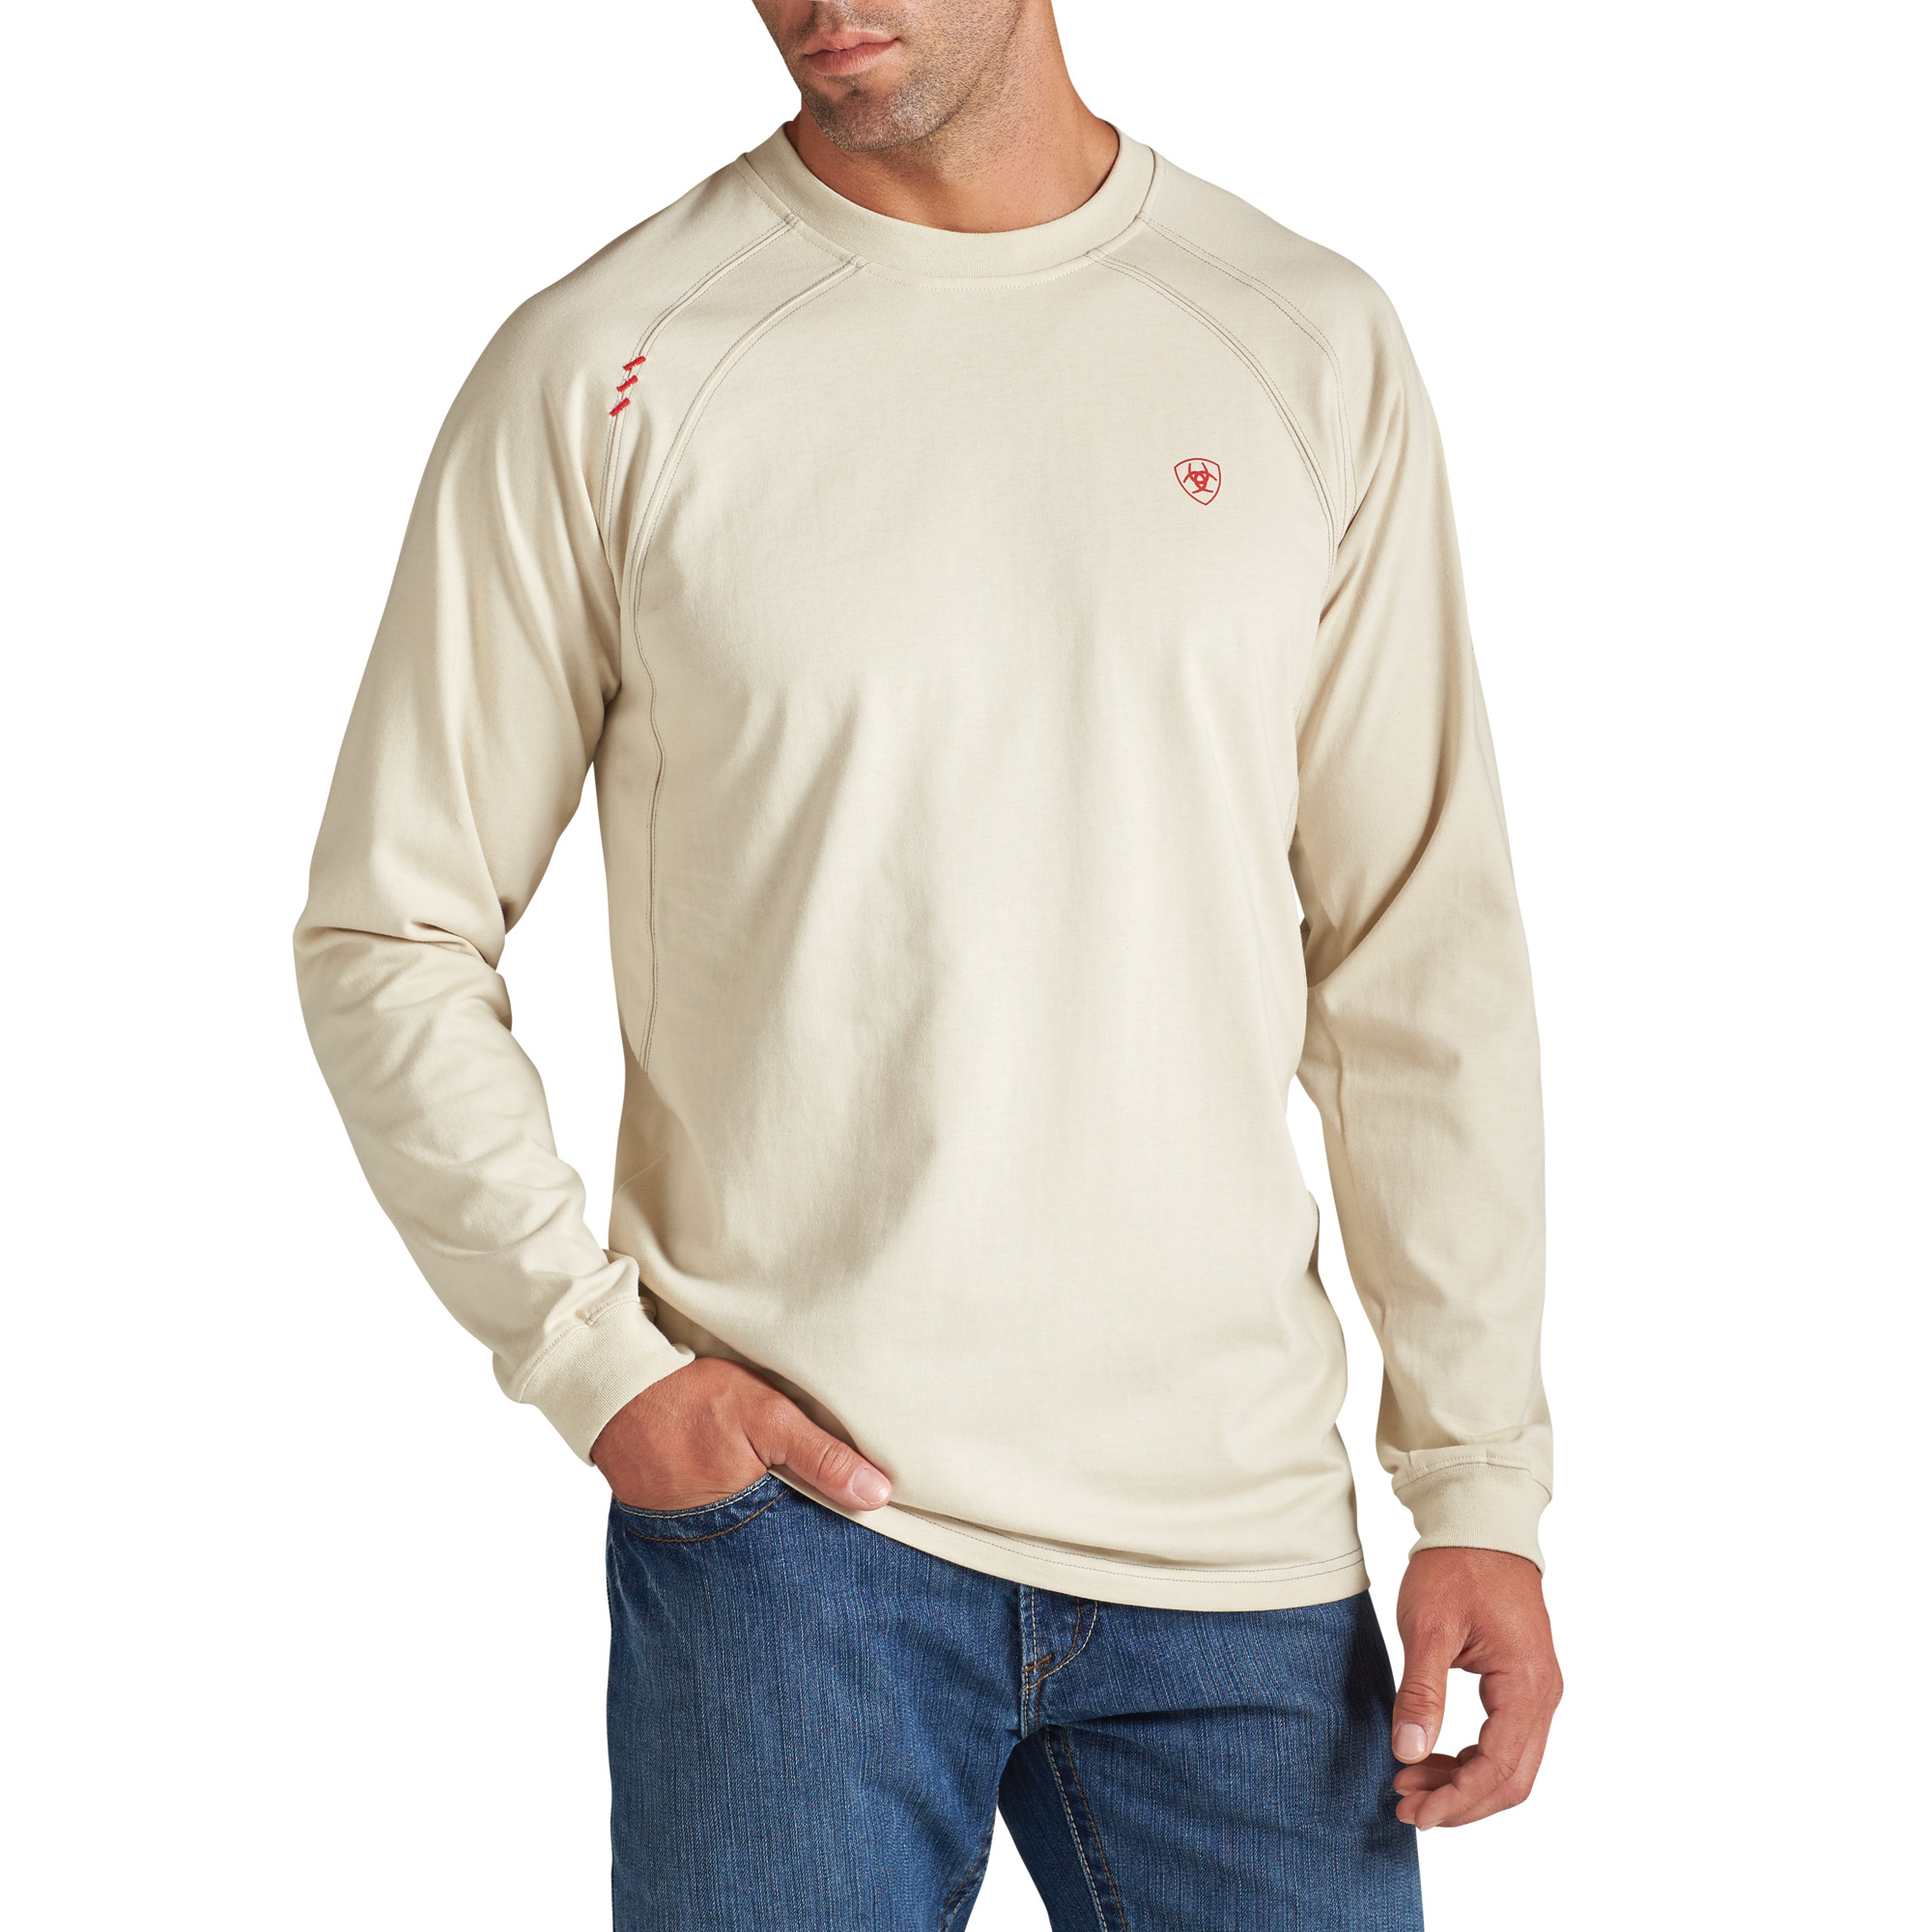 6f7b244a Ariat FR Long Sleeve Shirt | Breathable & Lightweight